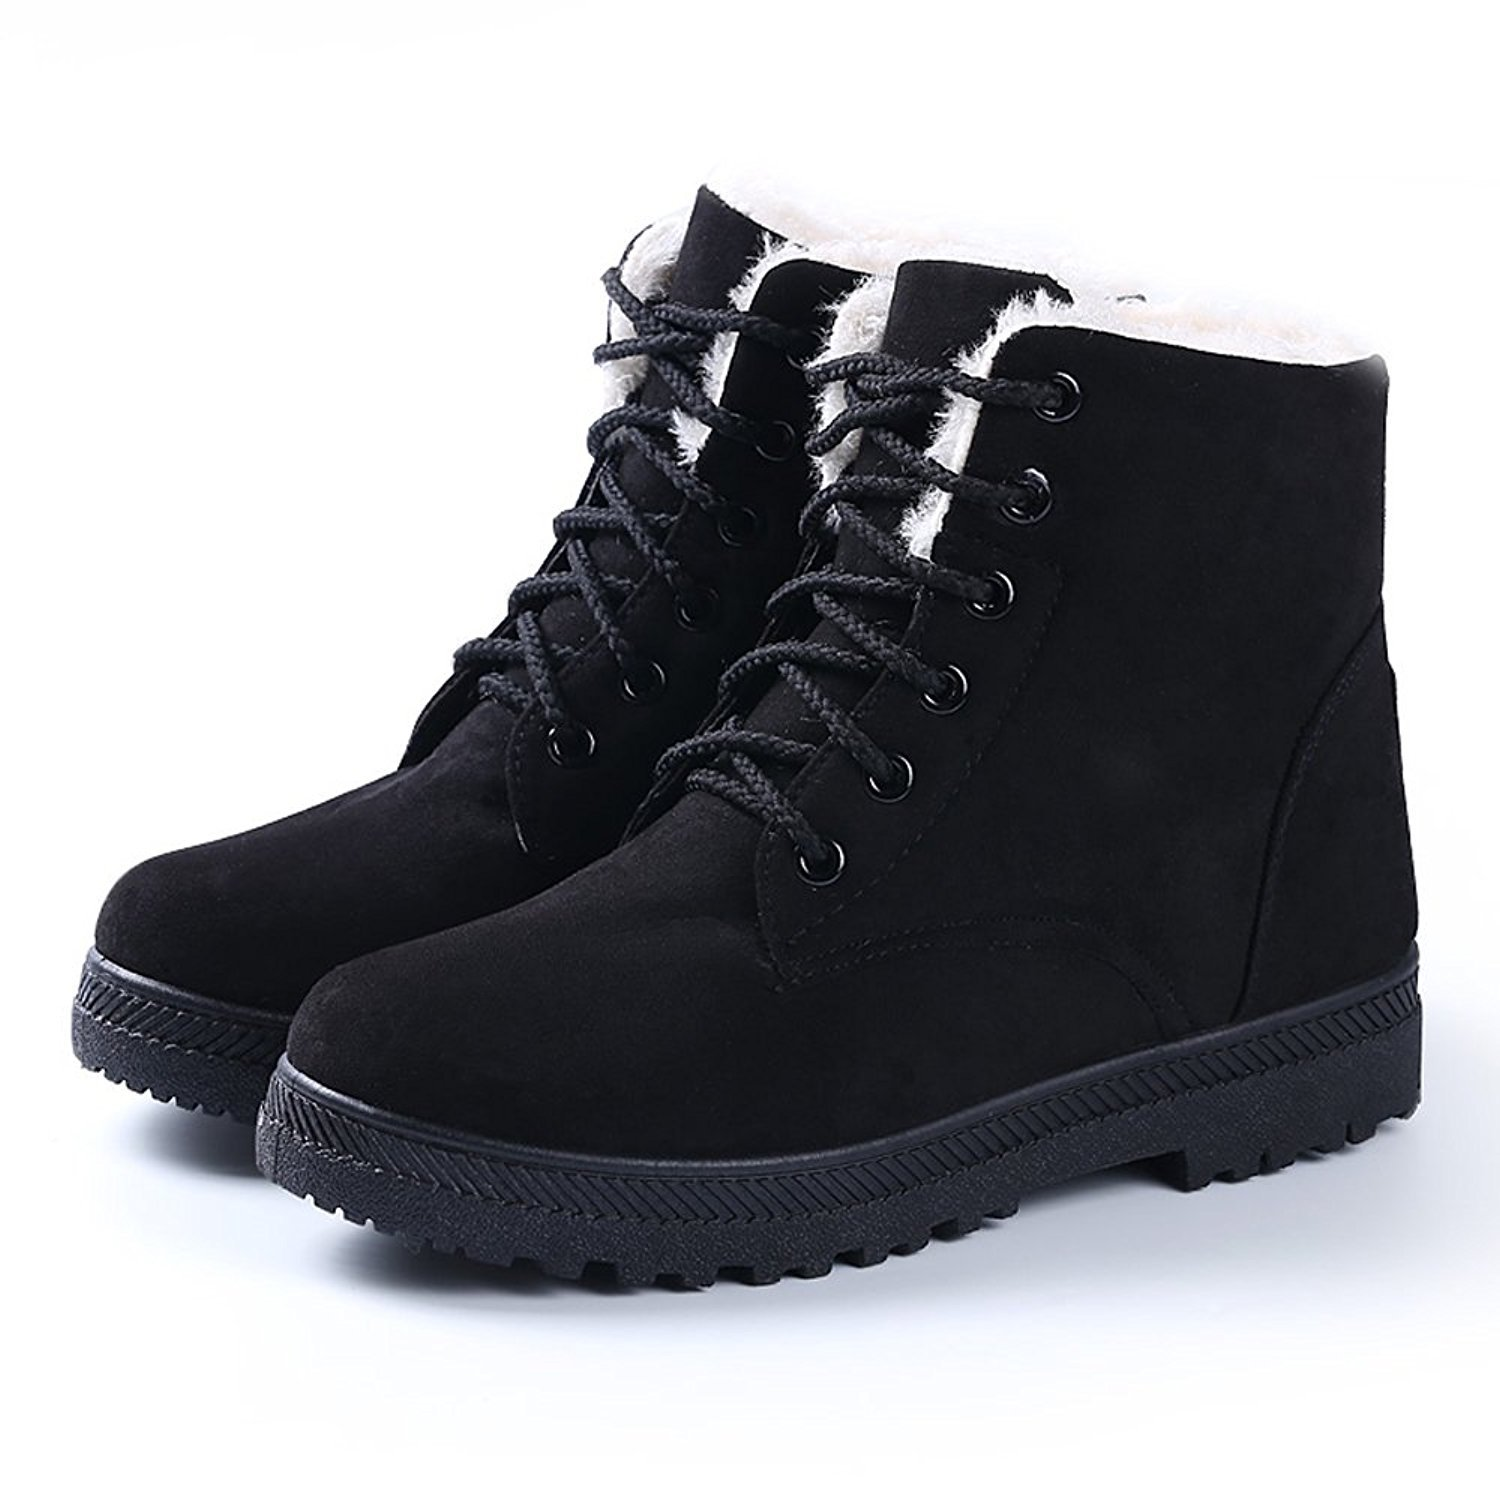 NOT100 Womens Snow Boots for Winter Ankle Boots Combat Walking Shoes Booties Black Vegan Size 9.5 9 1/2